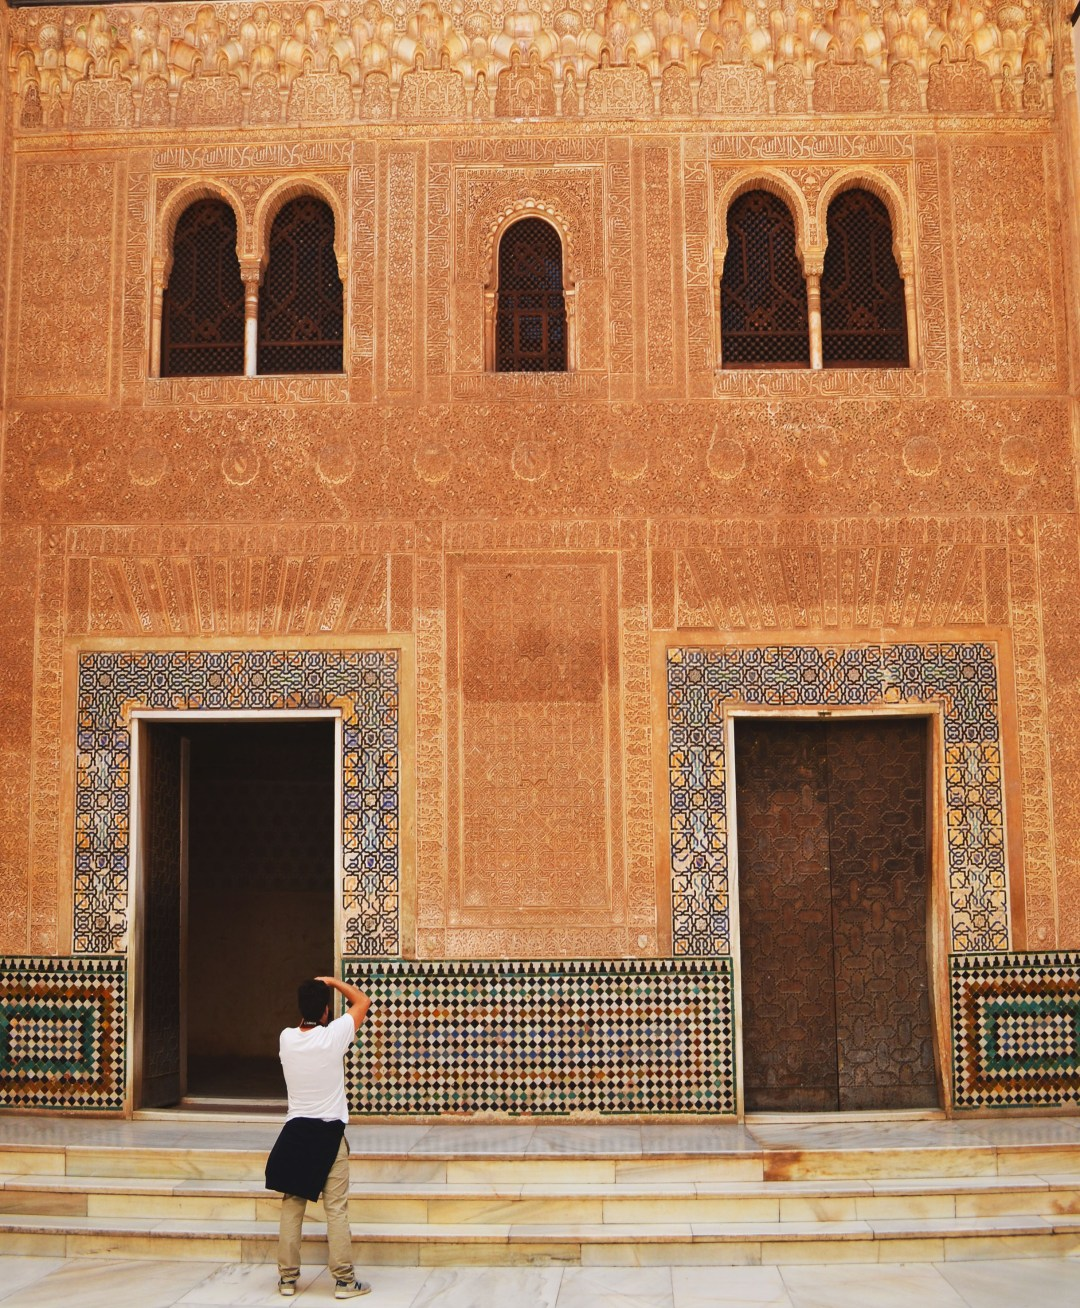 Matisse was inspired by the World Heritage Site Alhambra